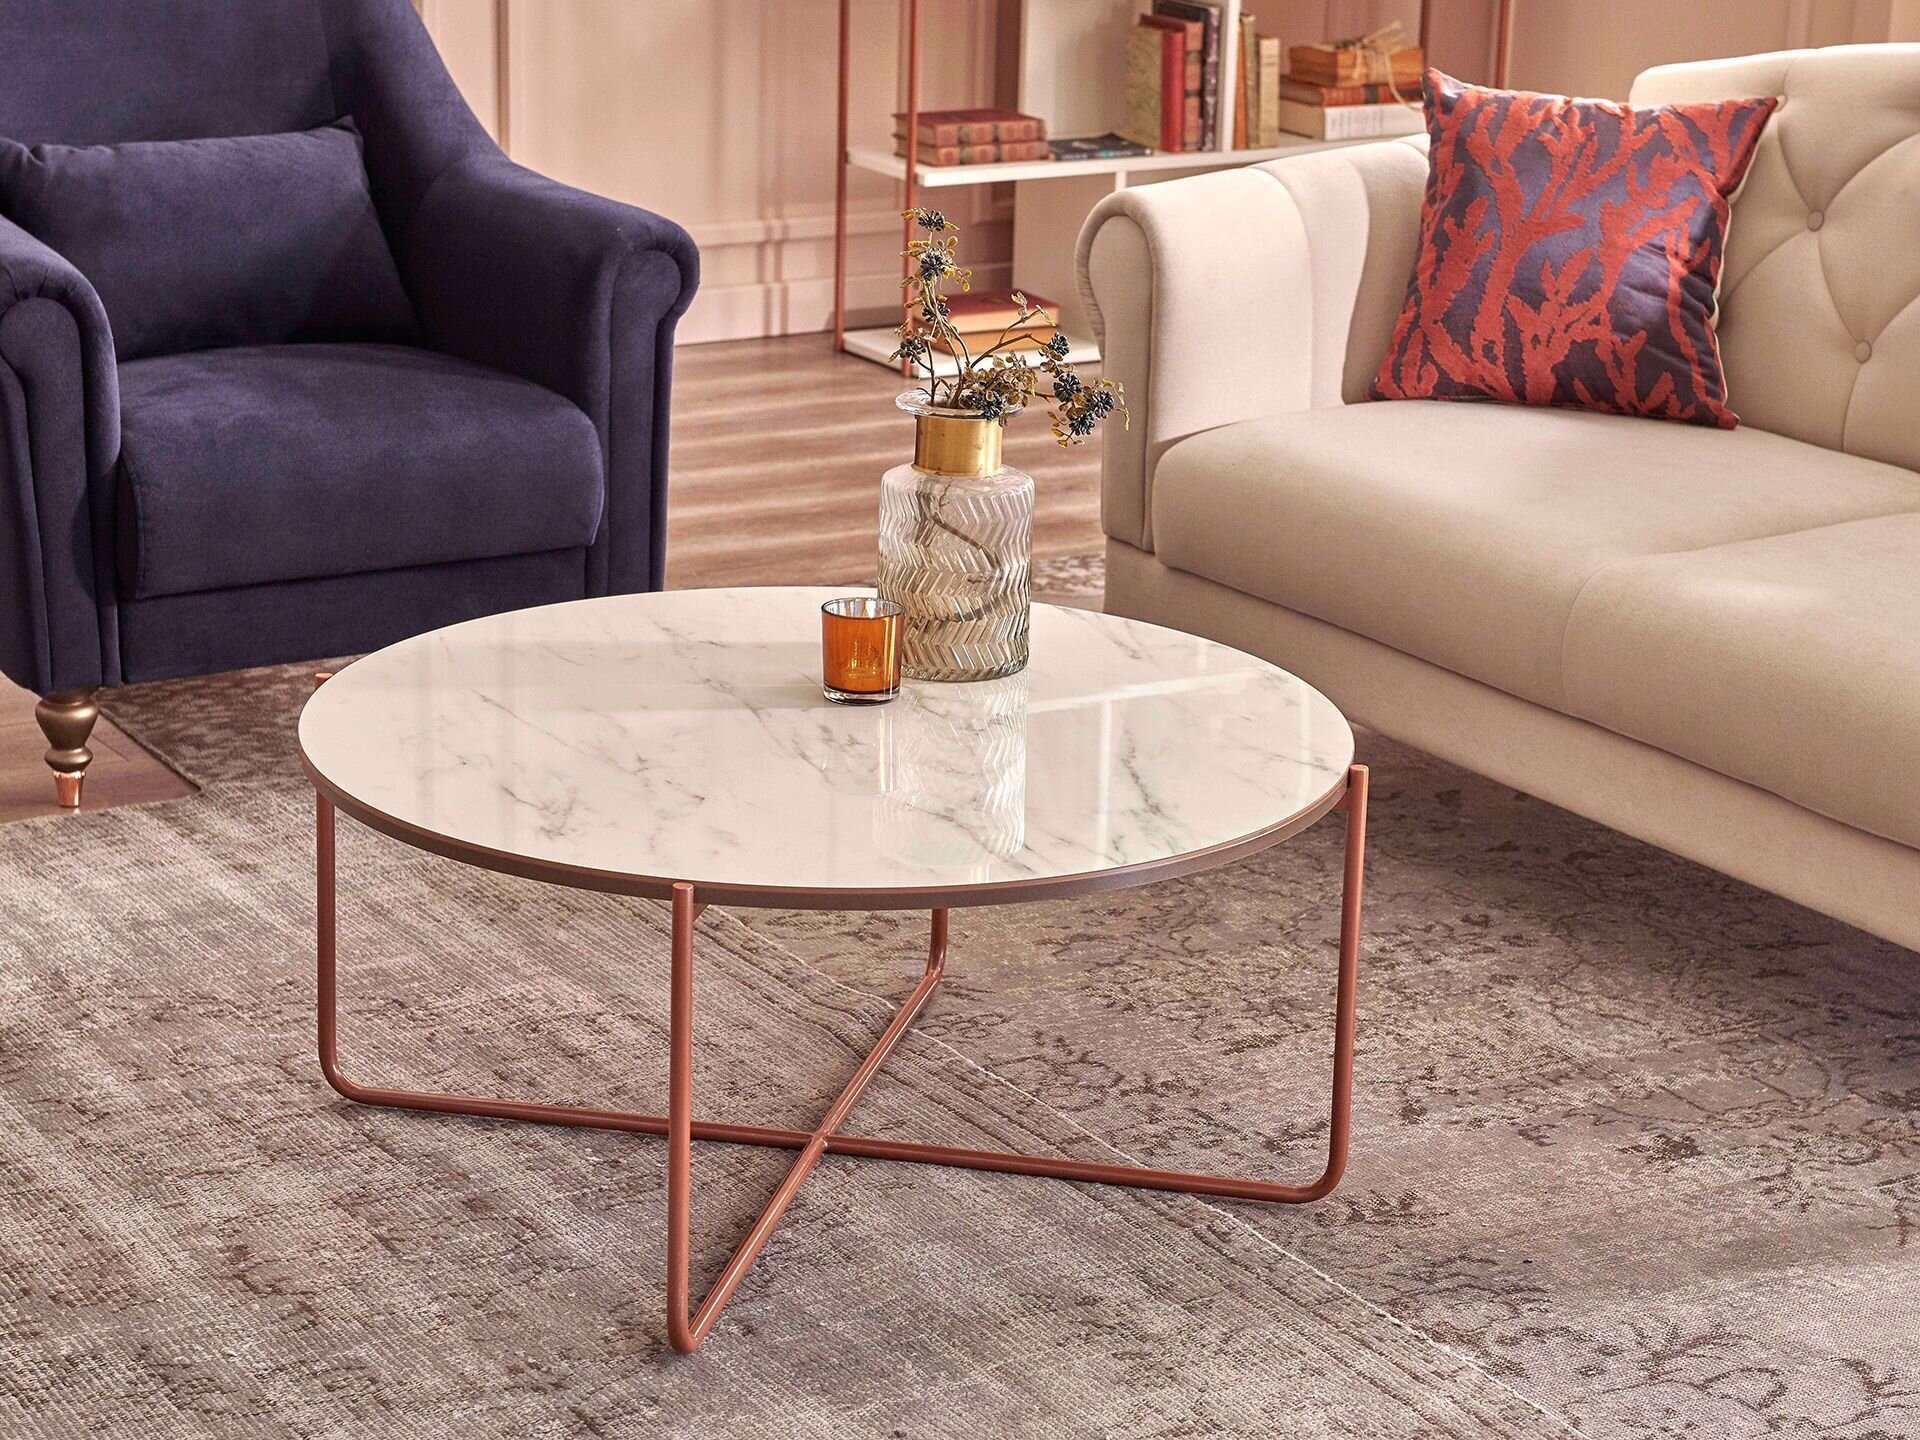 Coffee Table (with Metal Legs)